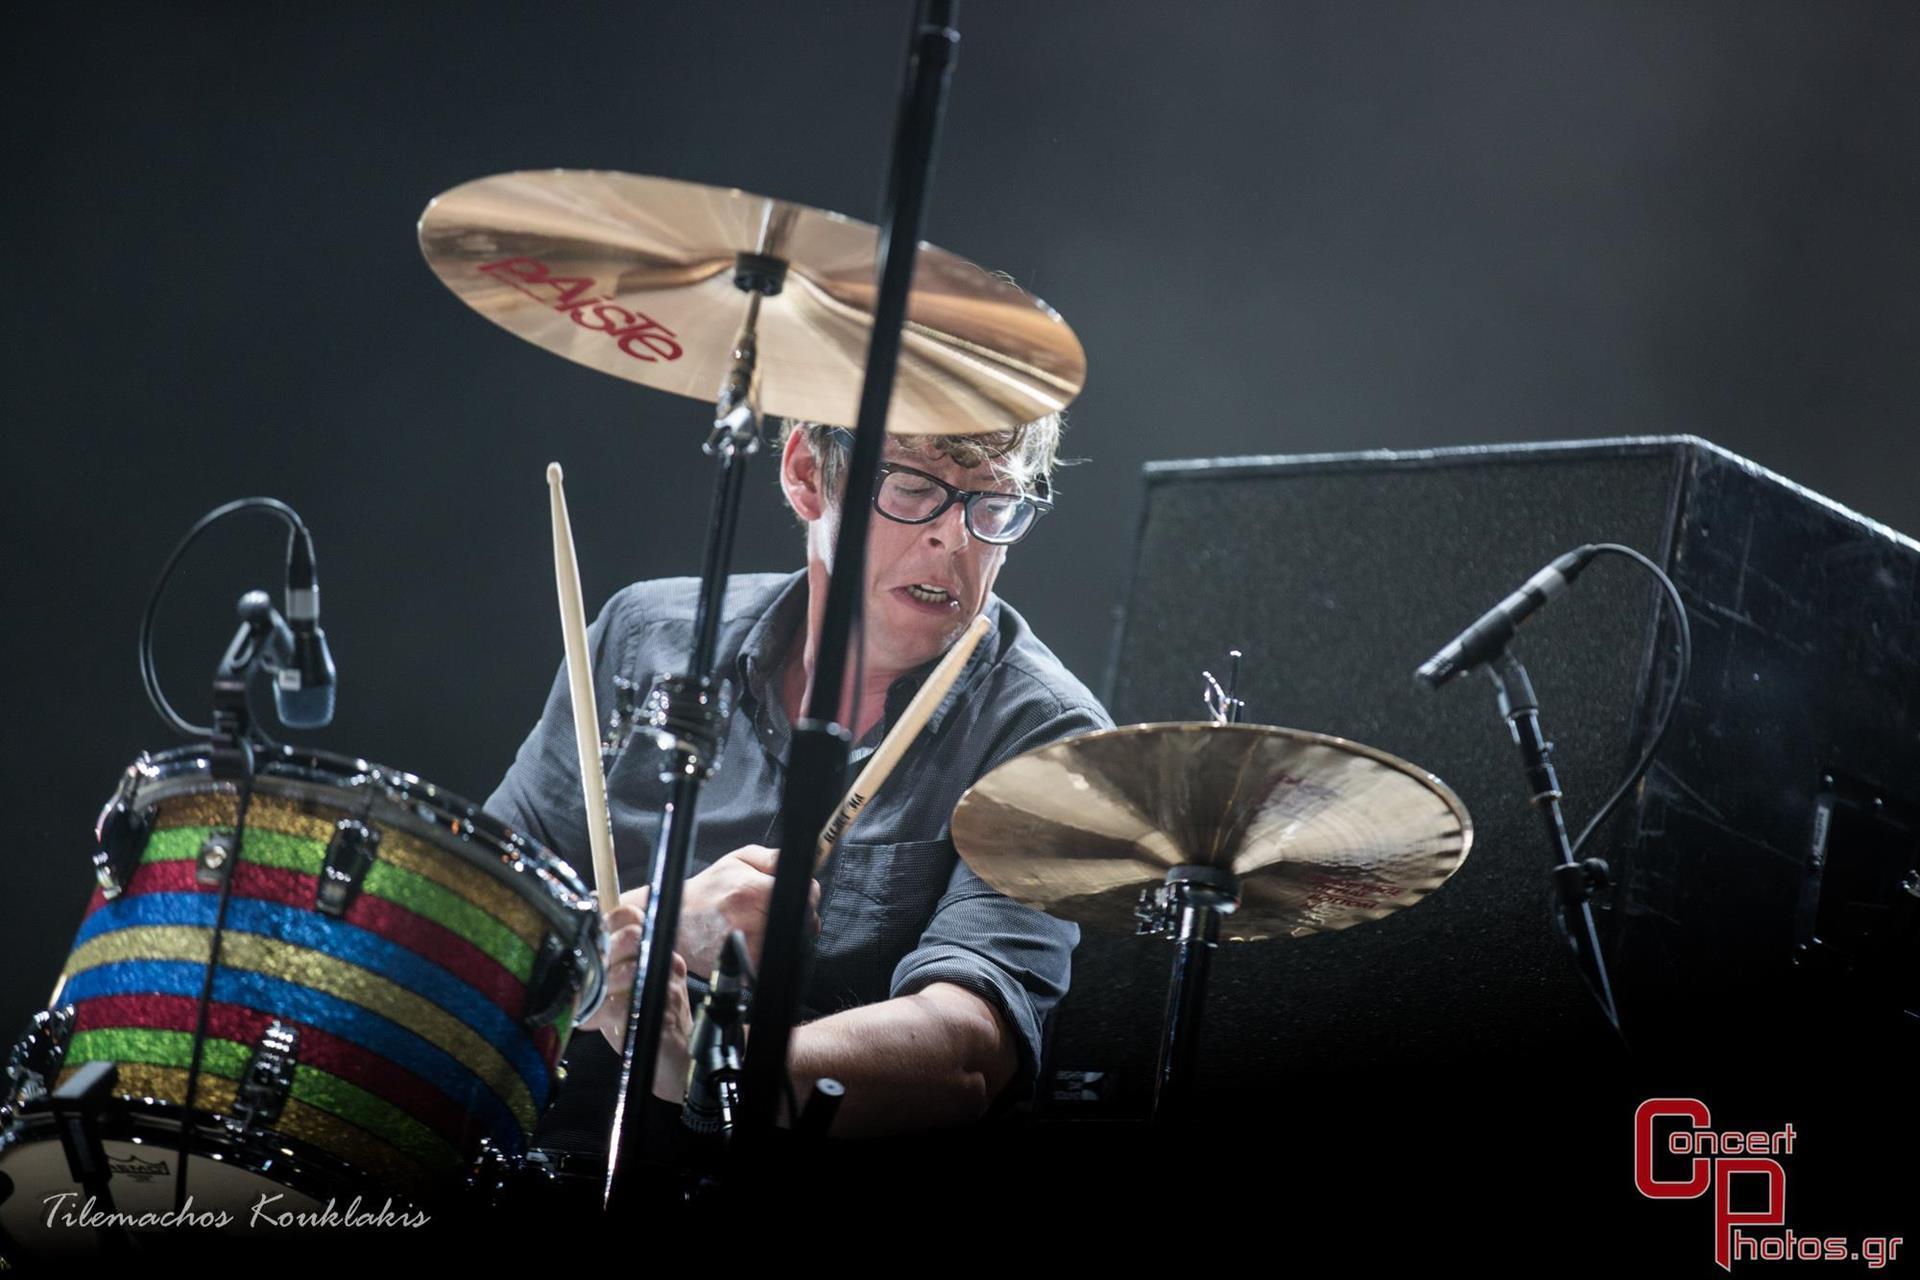 Rockwave 2015 - Black Keys-Black Angels-1000mods-The Big Nose Attack-Puta Volcano-Rockwave 2015 - Black Keys-Black Angels-1000mods photographer:  - 01_Black Keys _11